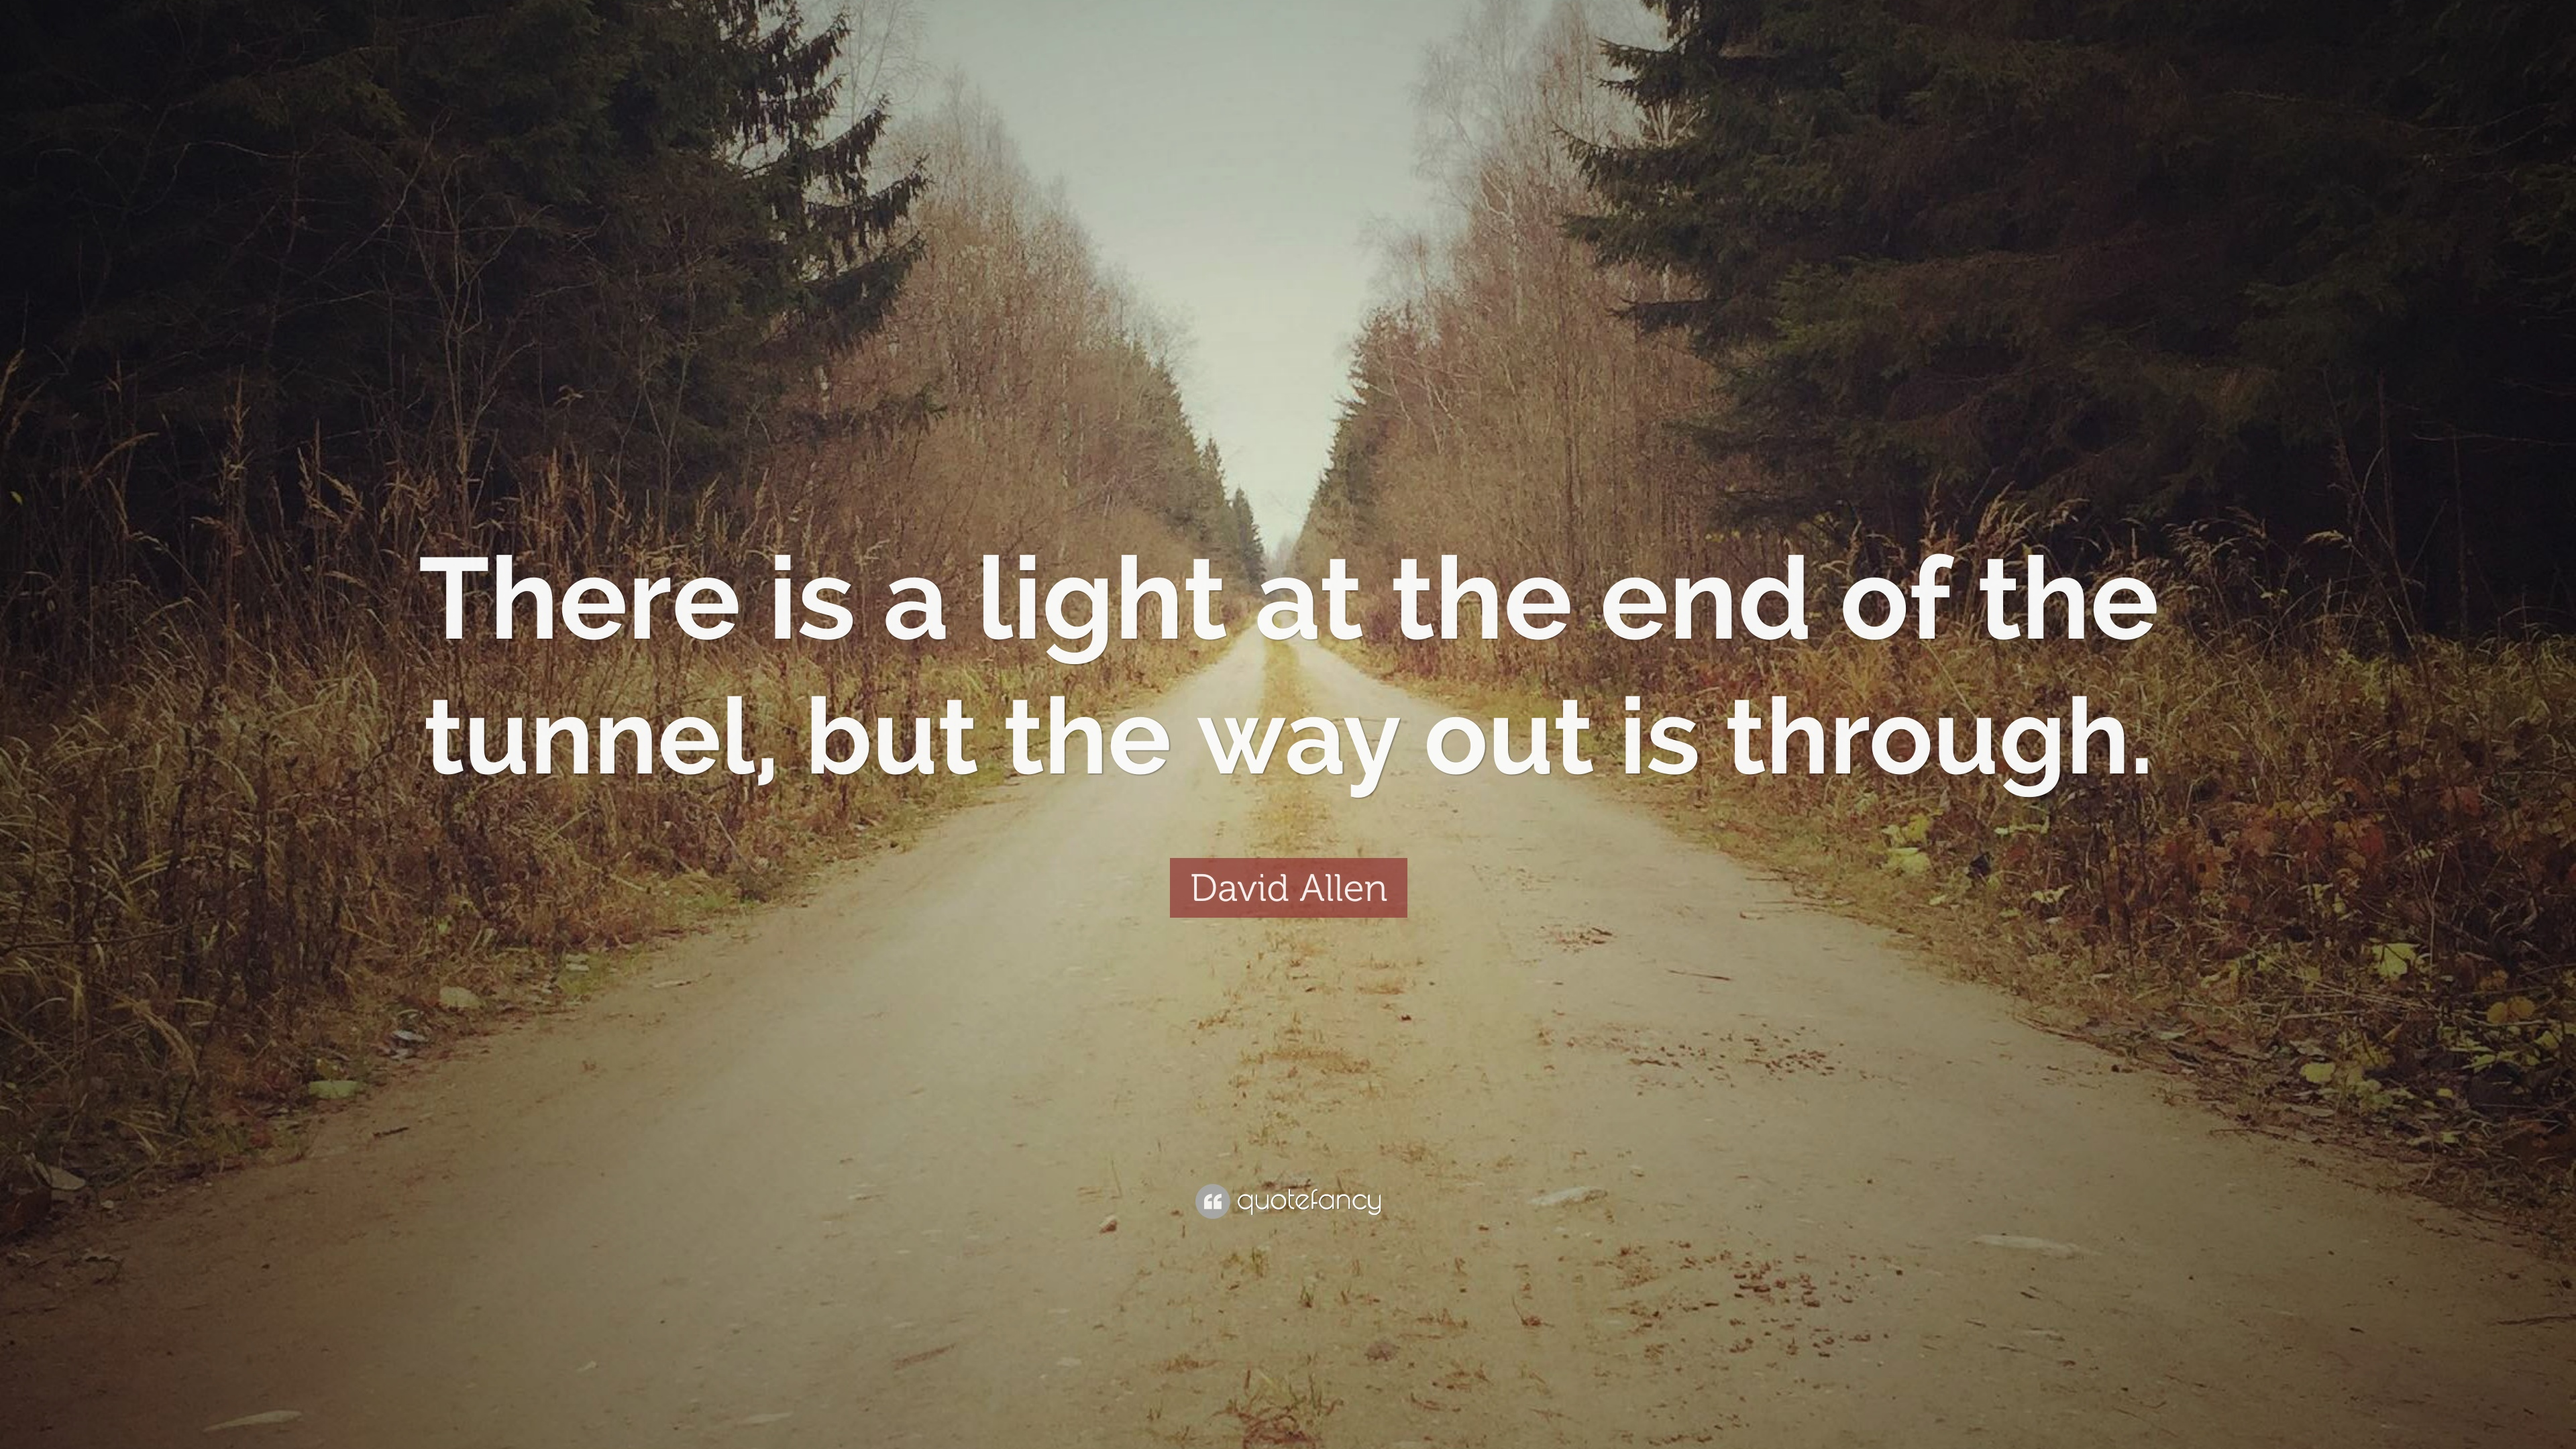 David Allen Quote There Is A Light At The End Of The Tunnel But